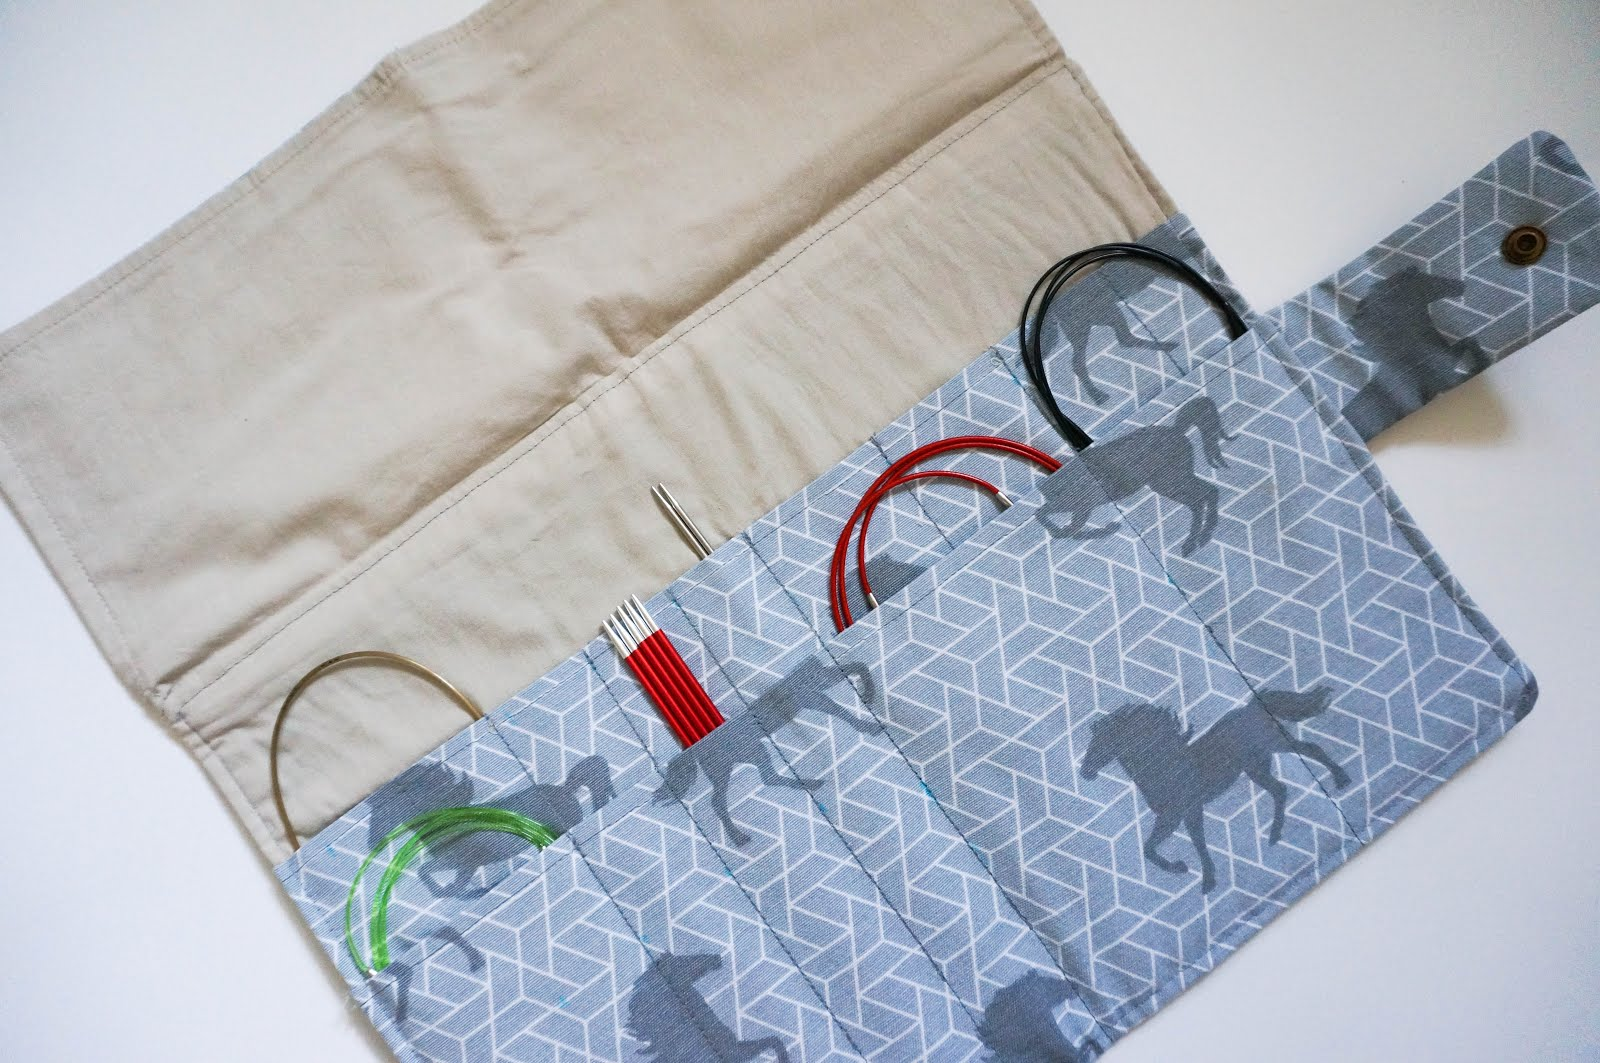 sew a needle case